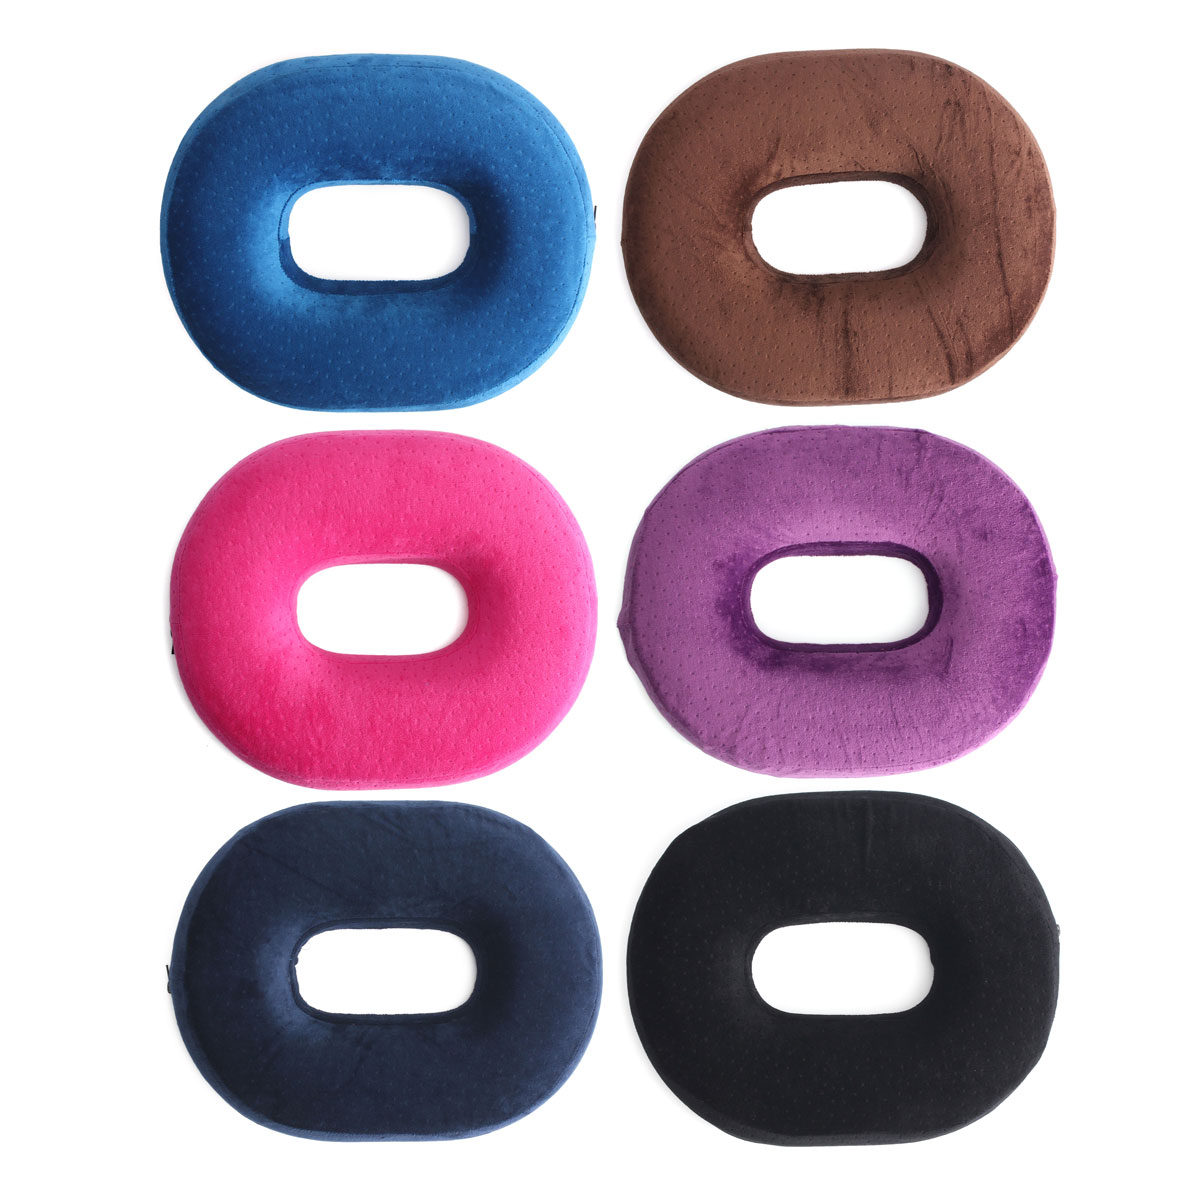 Pain Relief Support Ring Memory Foam Seat Cushion Comfort Sponge Donut Pillow Pad for Hemorrhoid Treatment, Back Coccyx & Tailbone Pain, Prostate